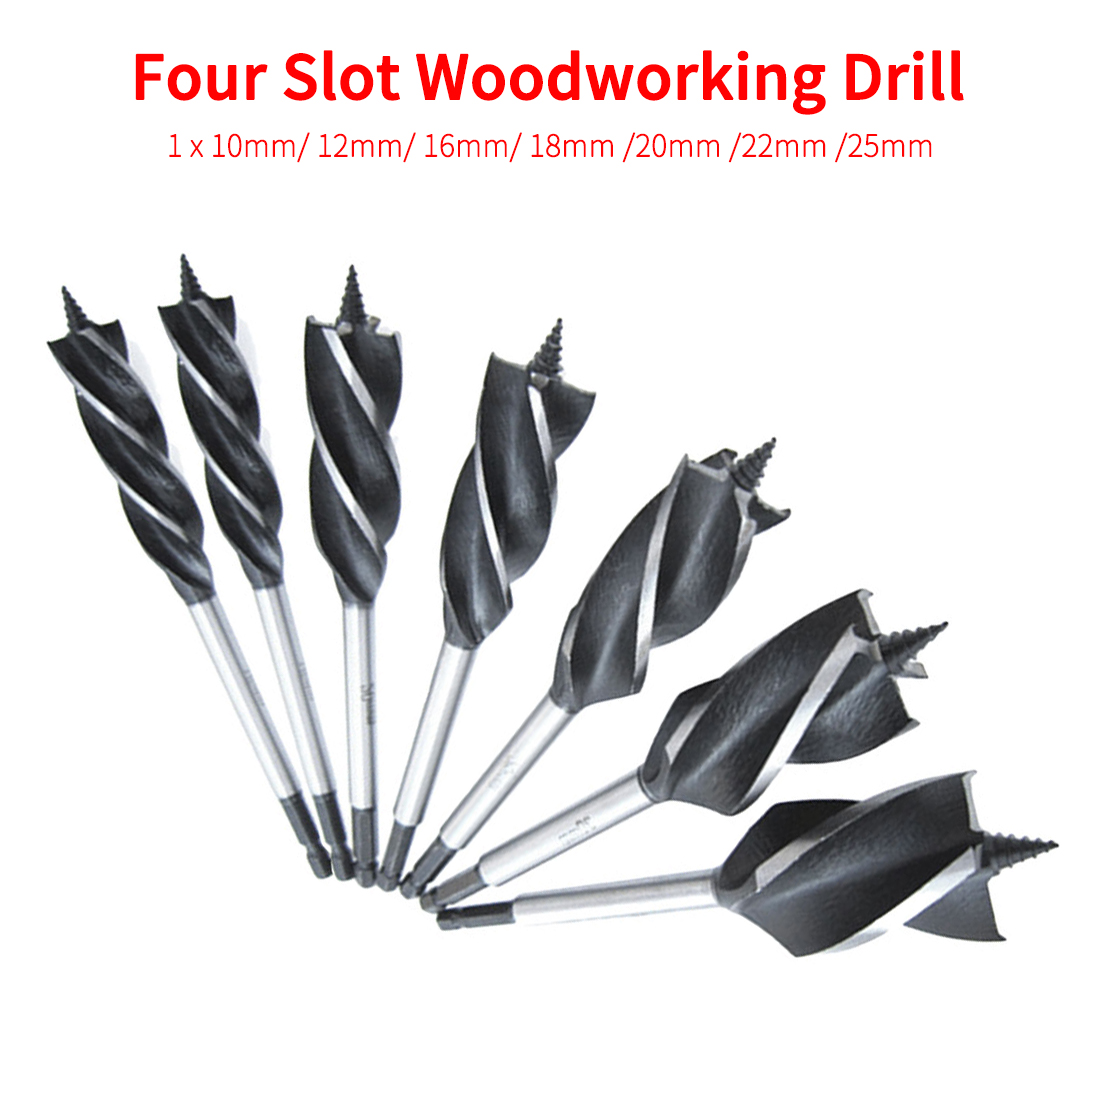 Hex Shank Twist Drill Bit Set Wood Fast Cut Auger Carpenter Joiner Tool Drill Bit For Drawer/ Door Lock/ Woodworking 10mm-25mm